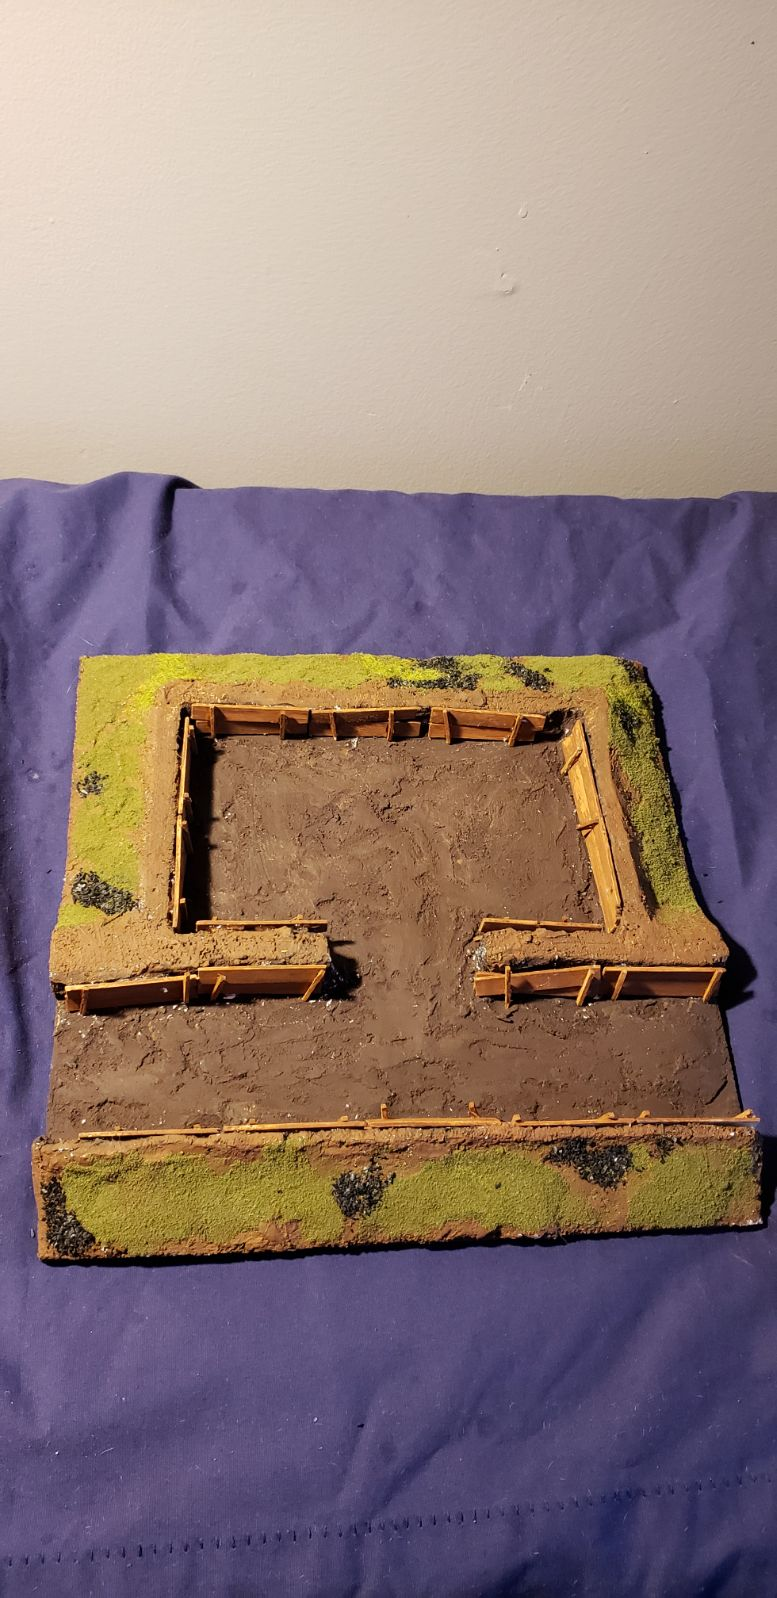 Warhammer Bunker and Trench